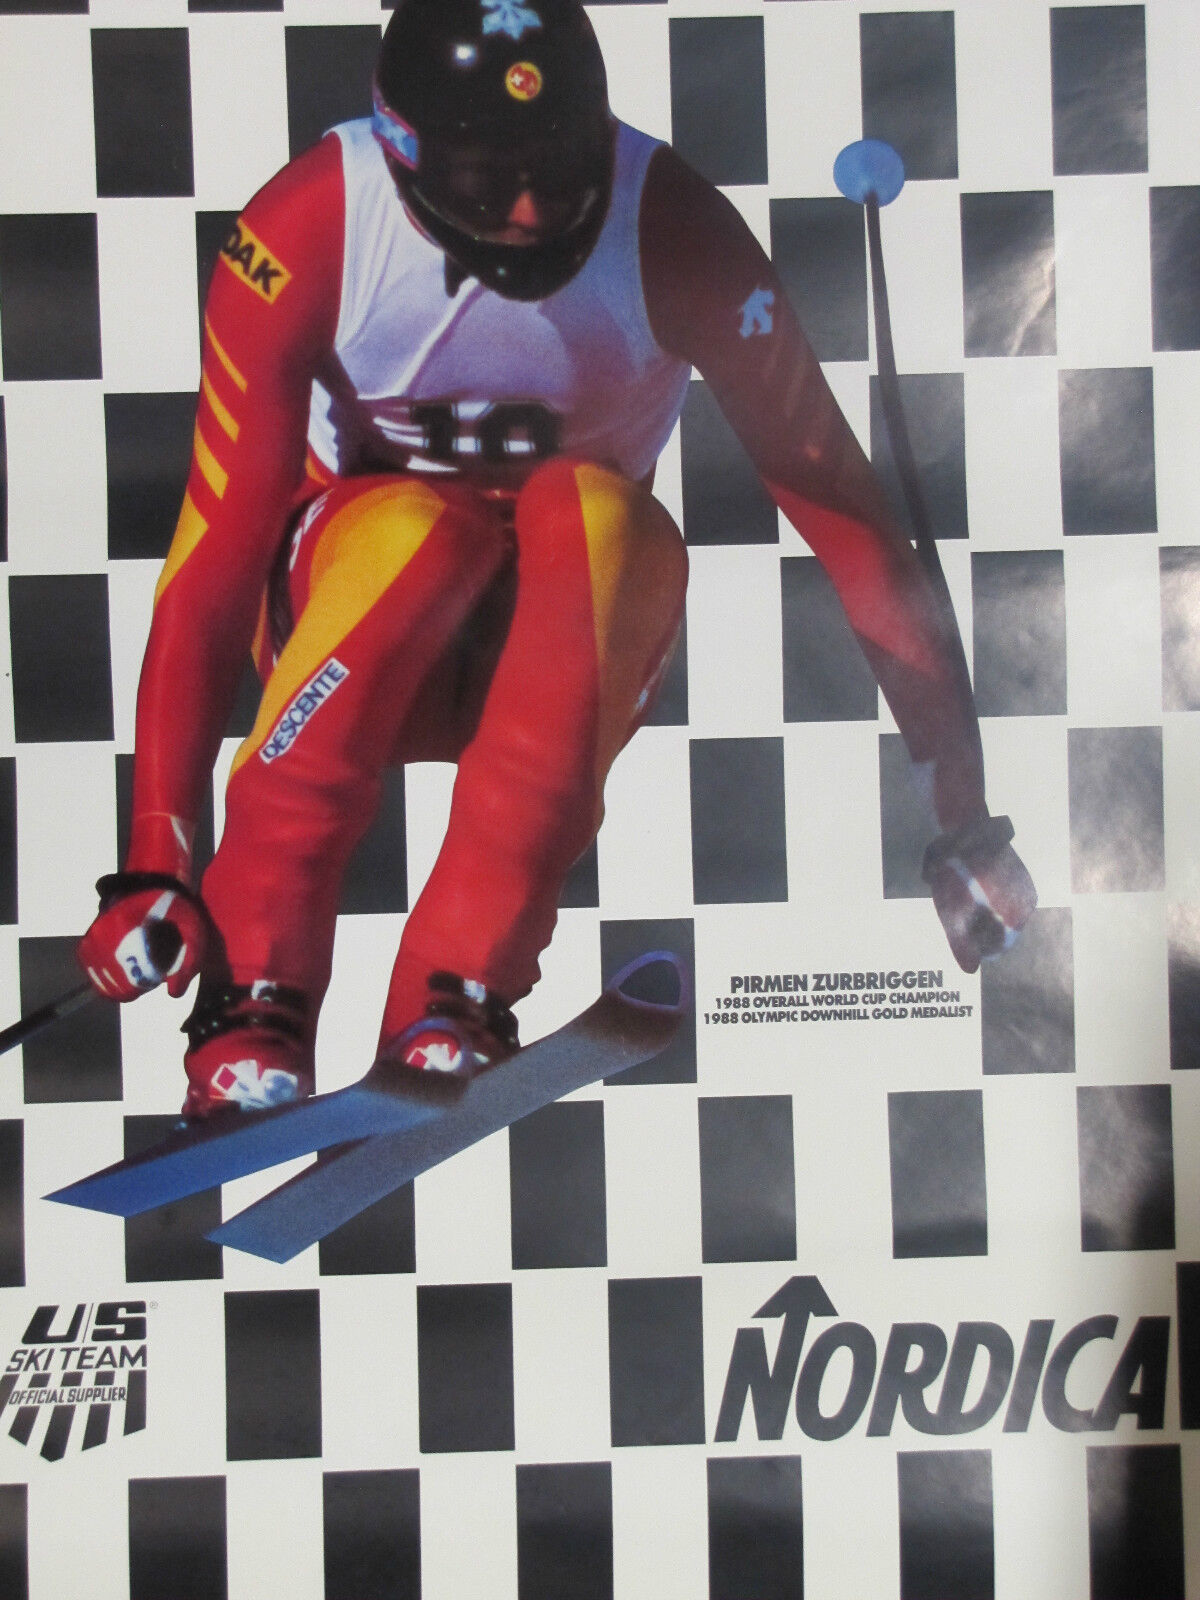 Orig NORDICA REACH A  NEW HIGH PIRMEN ZURBRIGGEN Ski Skiing Ad Sign Poster  is discounted